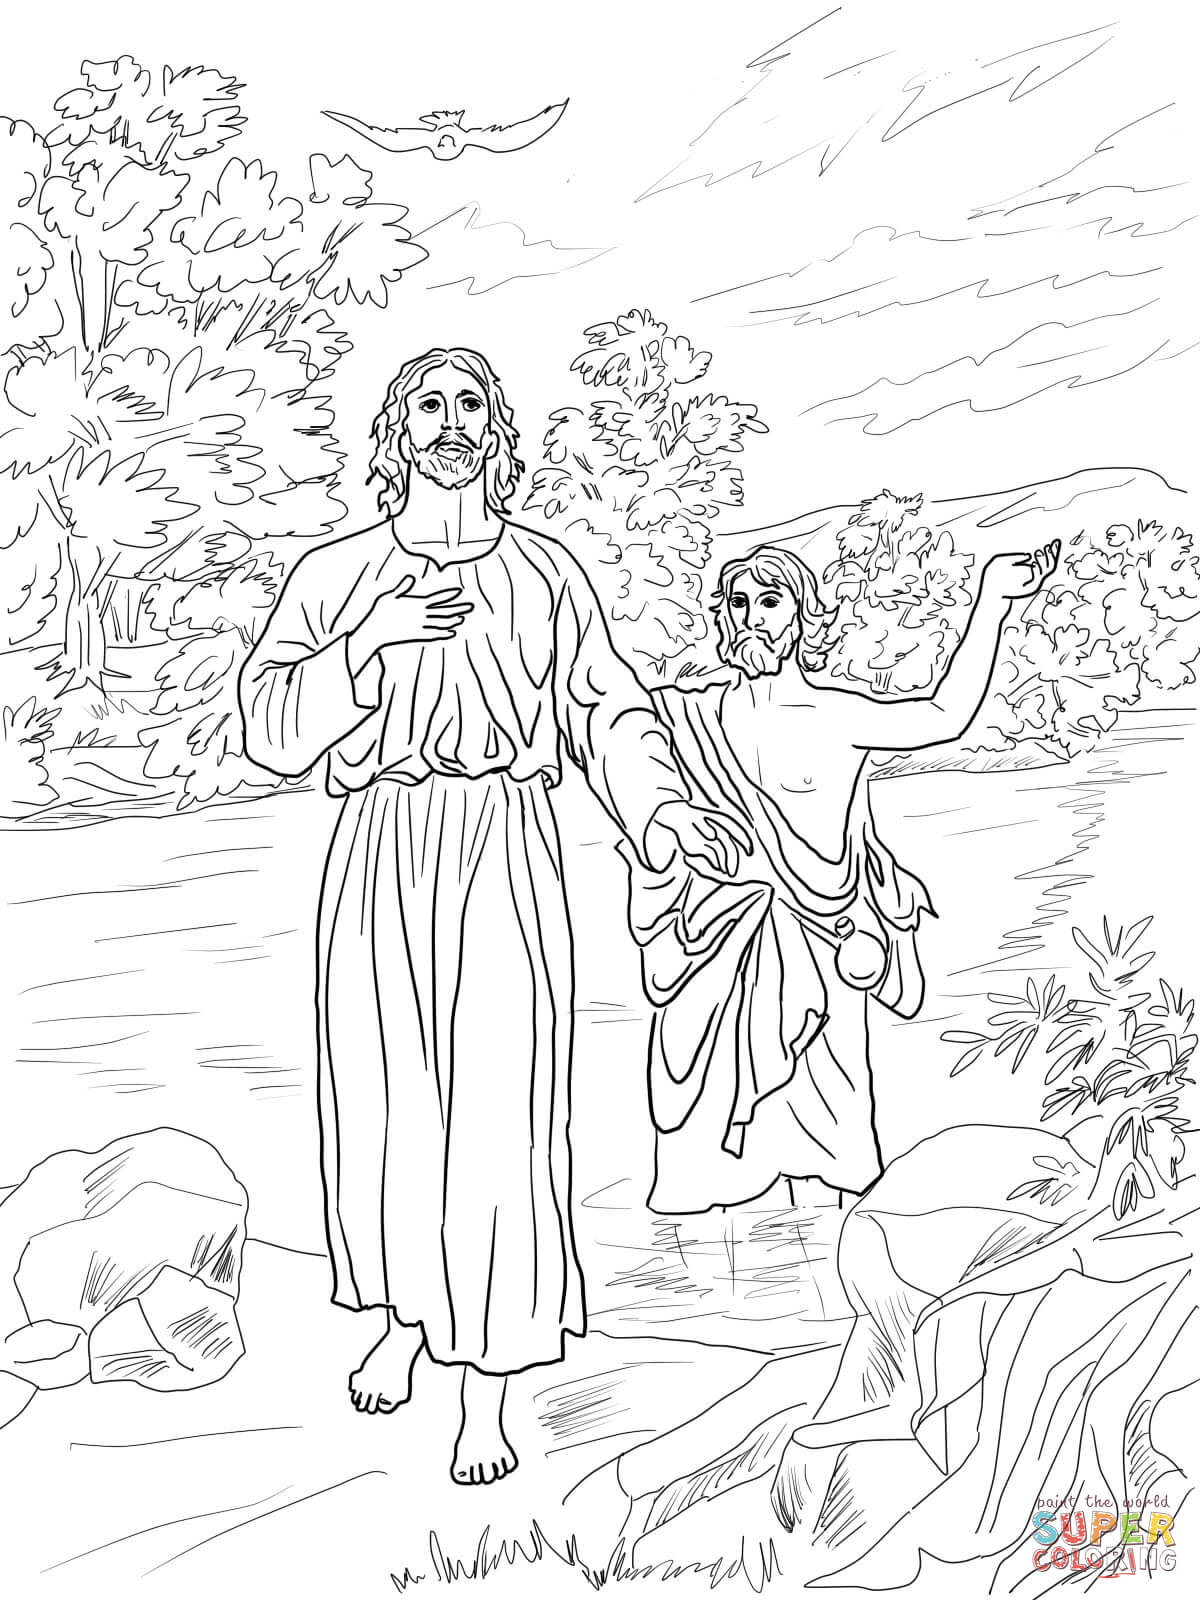 baptism of jesus coloring page 25 awesome photo of baptism coloring pages catholic page of jesus baptism coloring